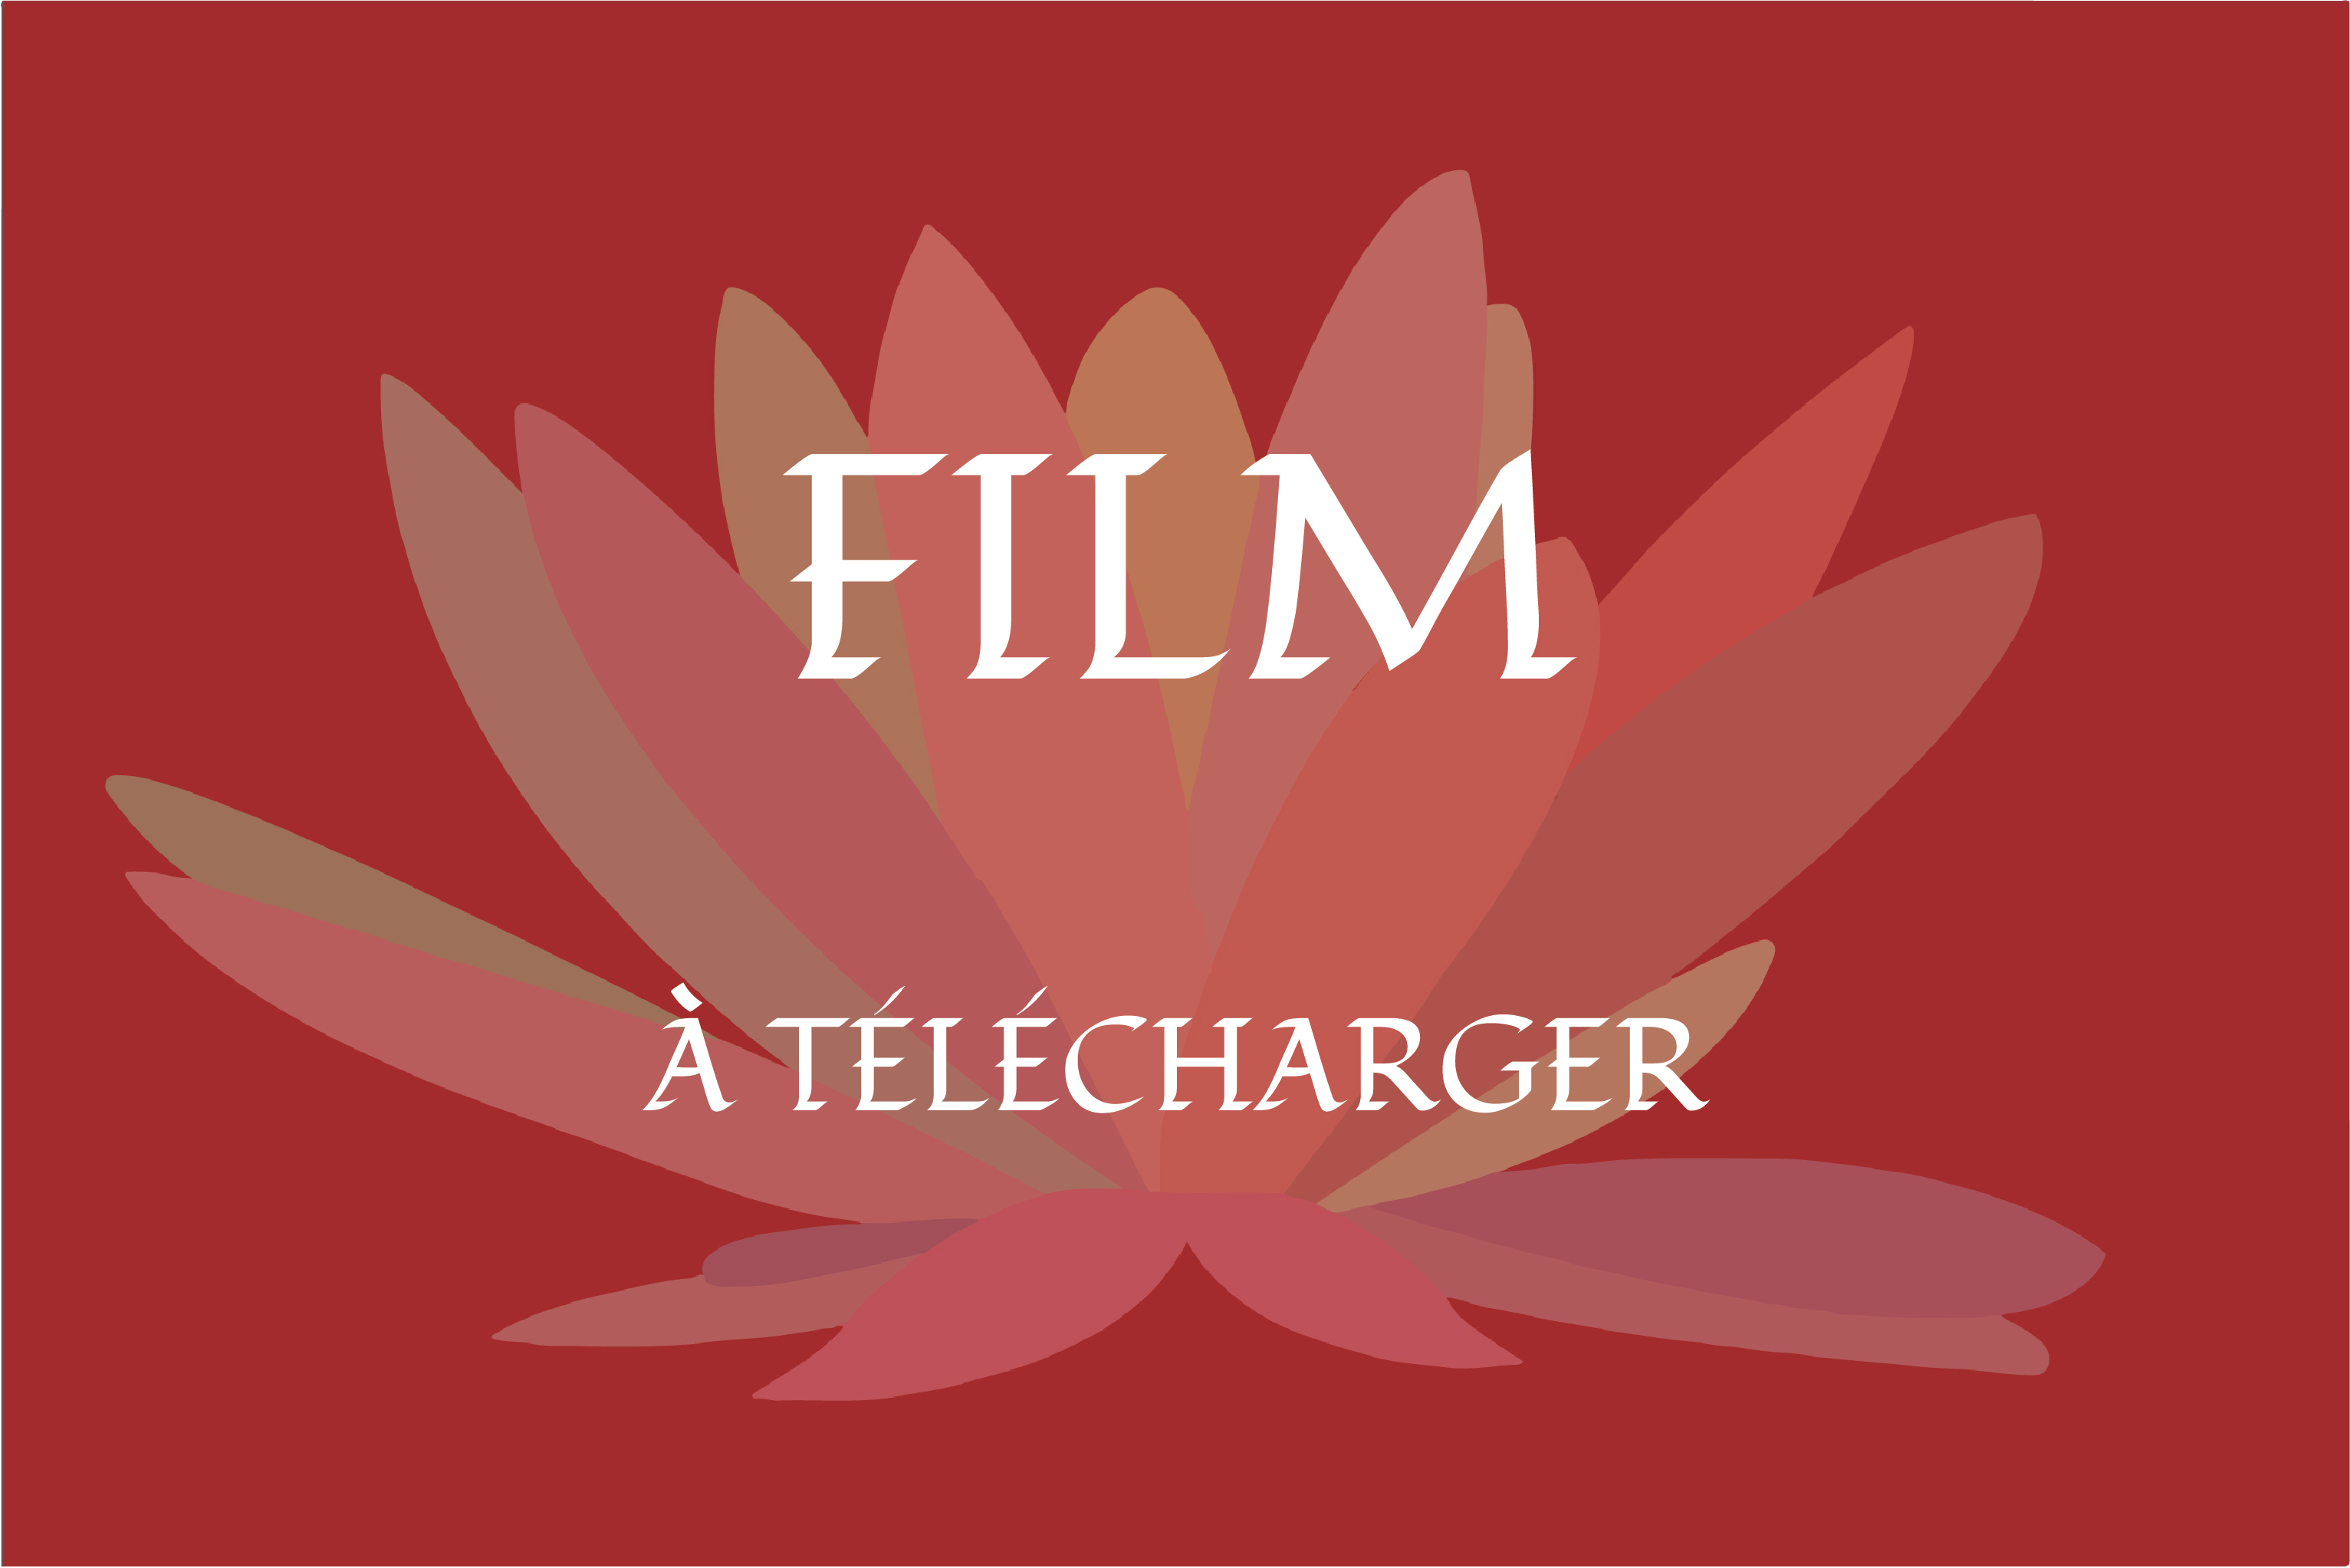 FILM_A__TE_LE_CHARGER-1528815467.jpg